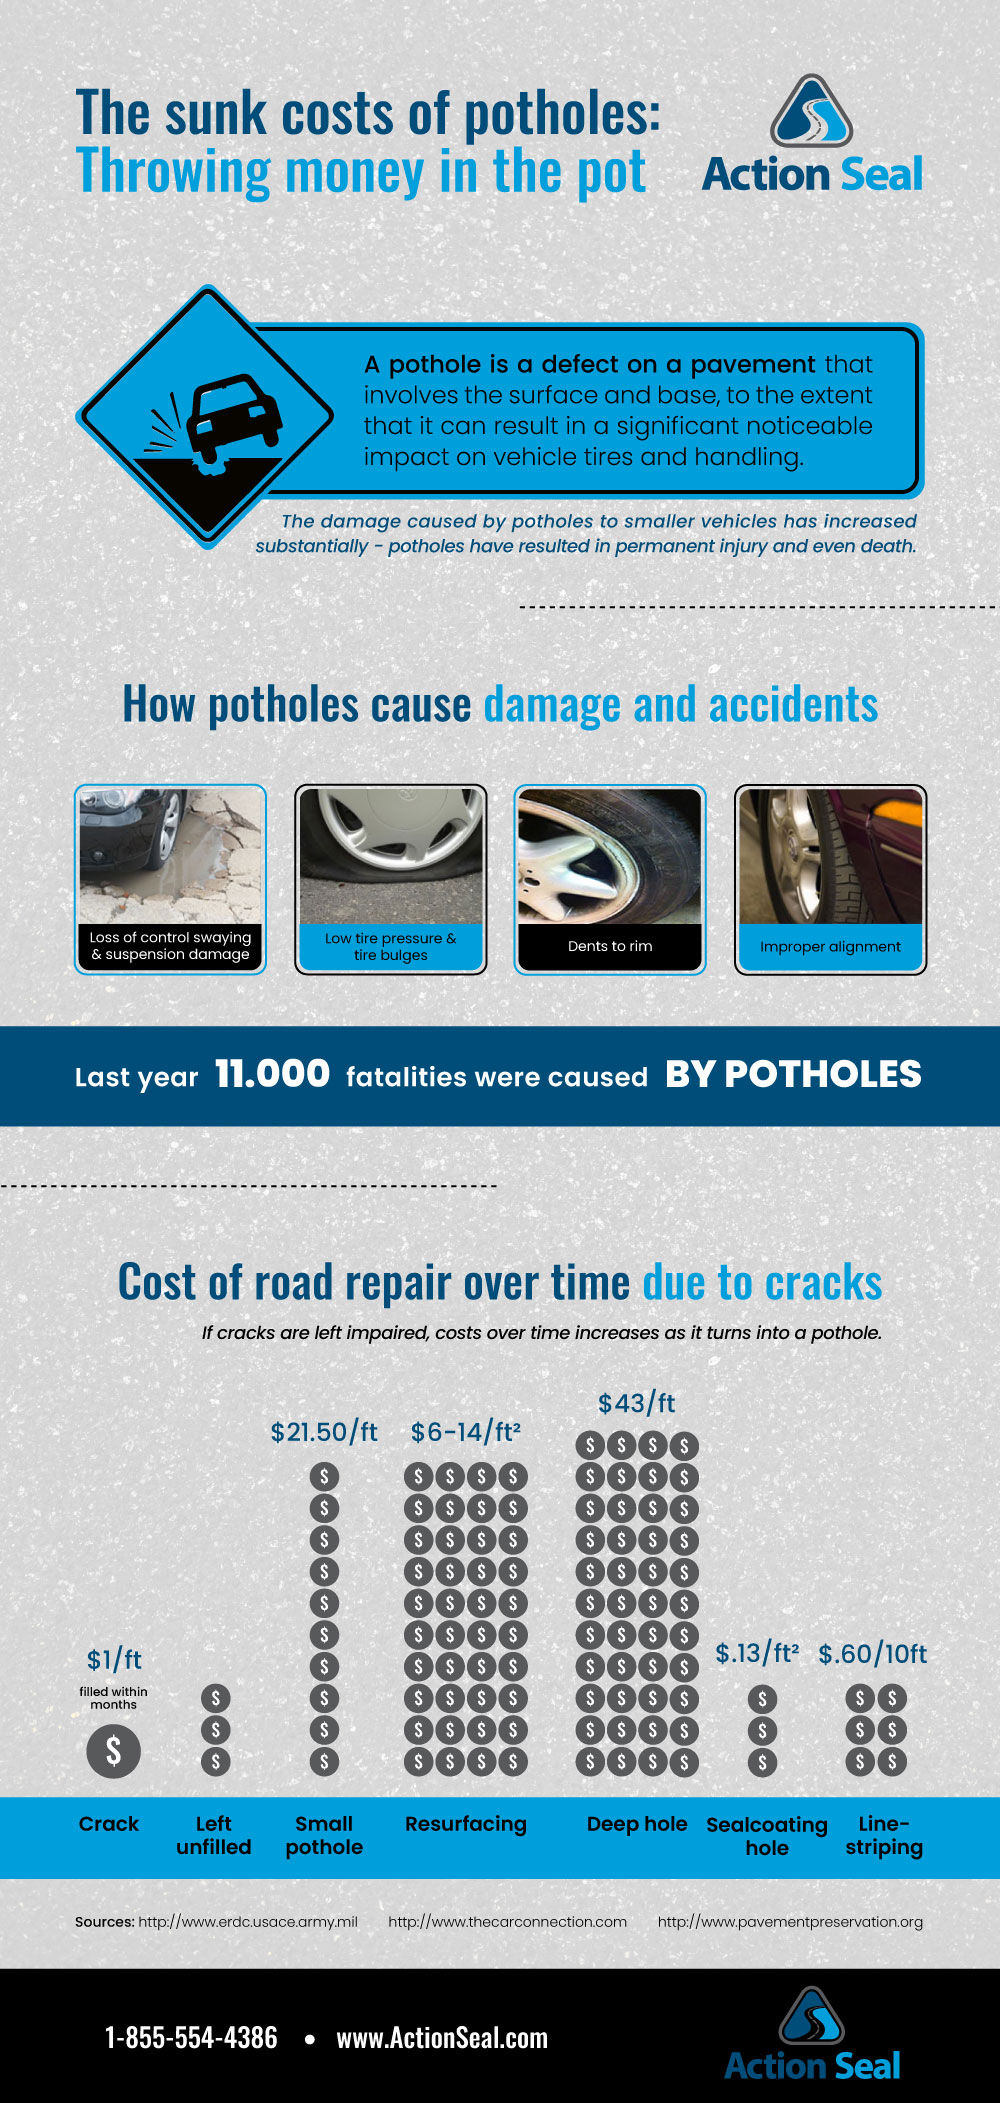 The sunk costs of Potholes: Throwing money in the pot